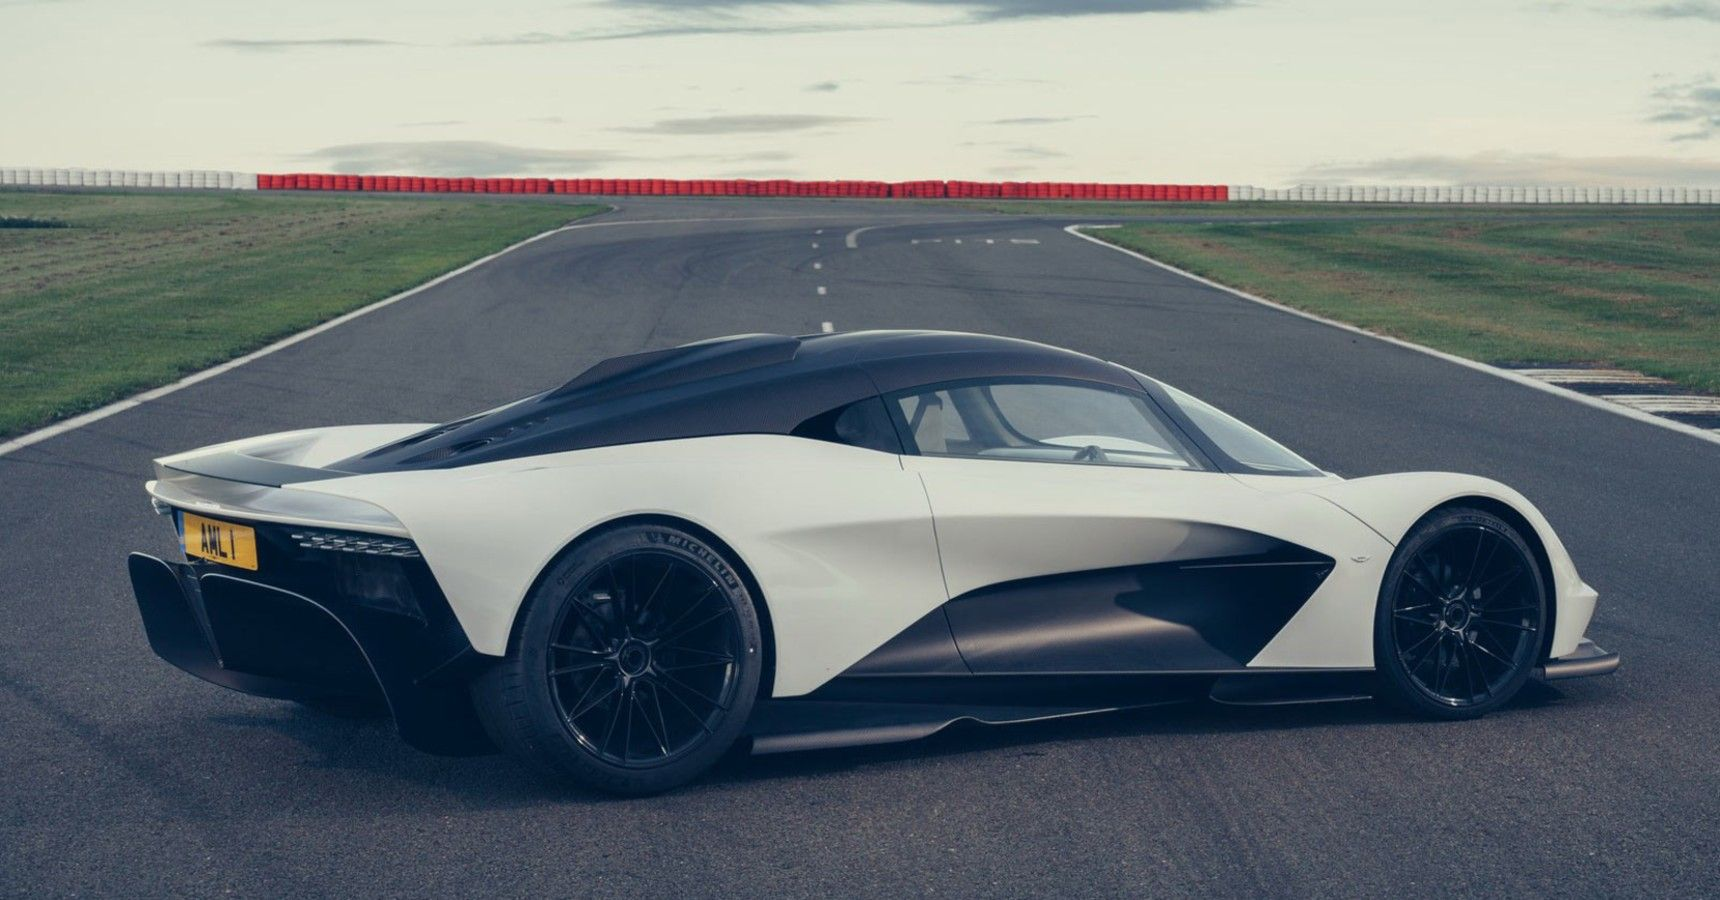 The Aston Martin Valhalla 2022 Is A Turbocharged F1 Inspired Monster